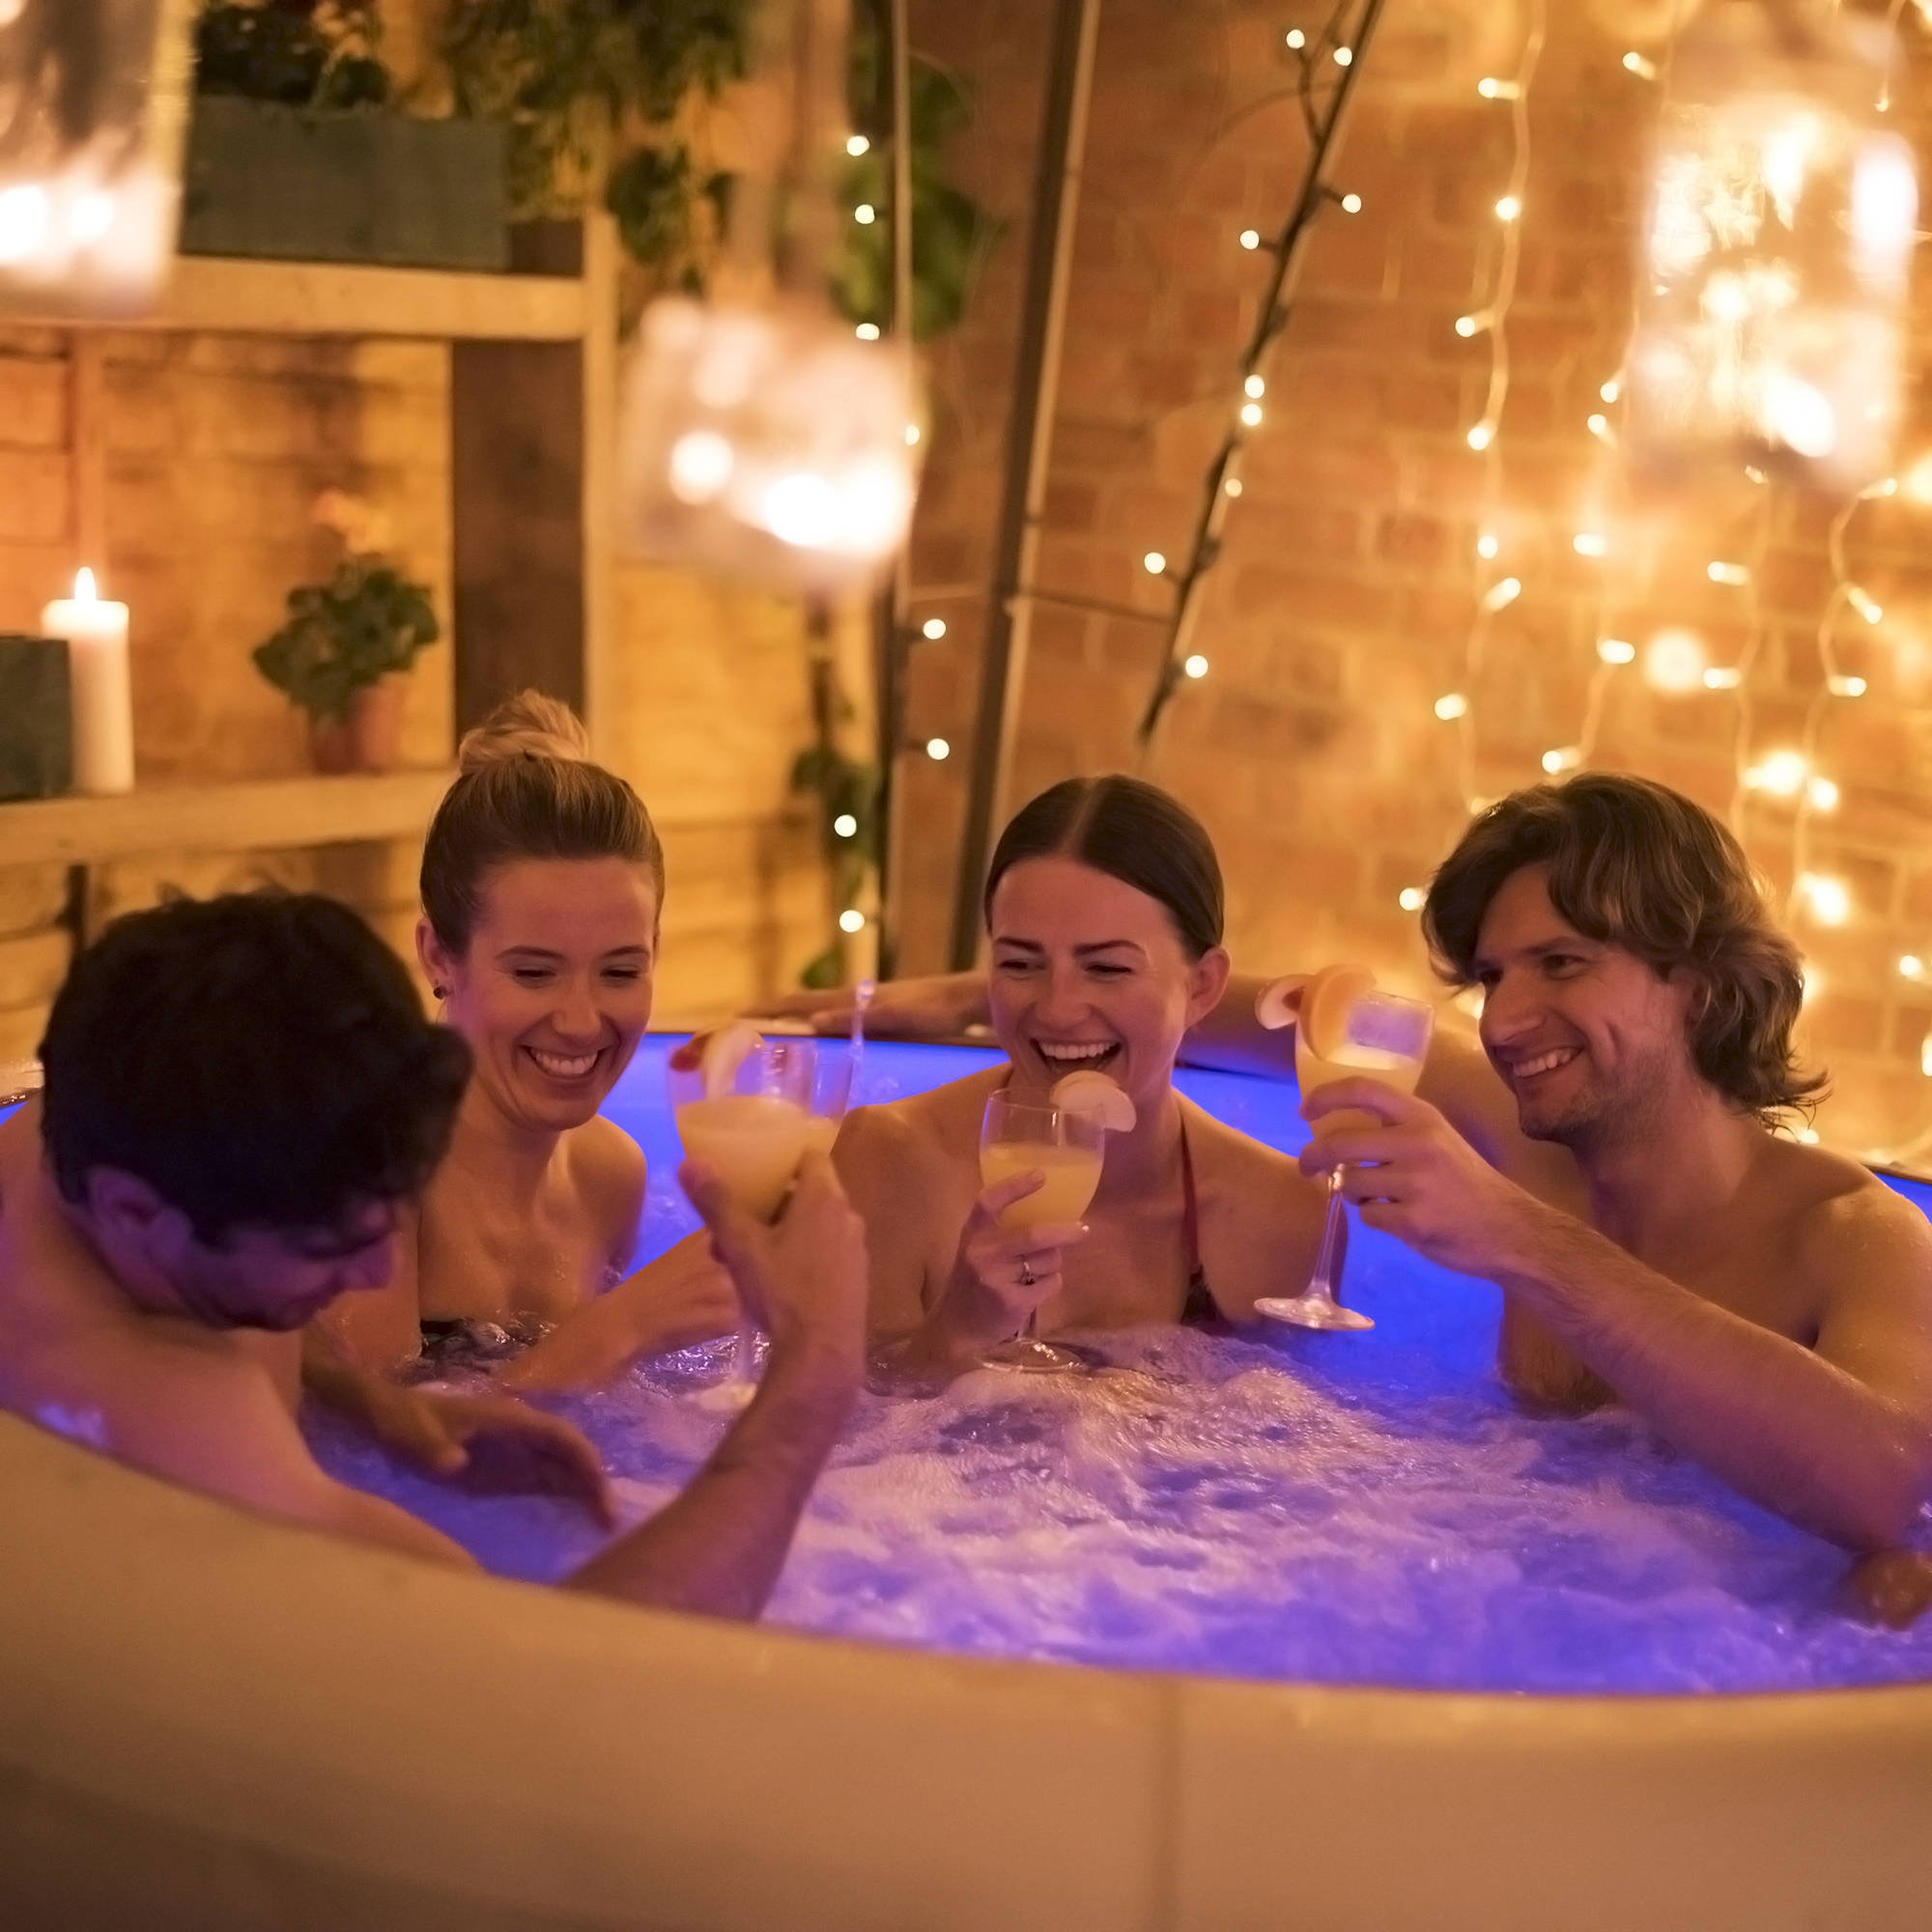 Lay-Z-Spa Paris AirJet Inflatable Hot Tub